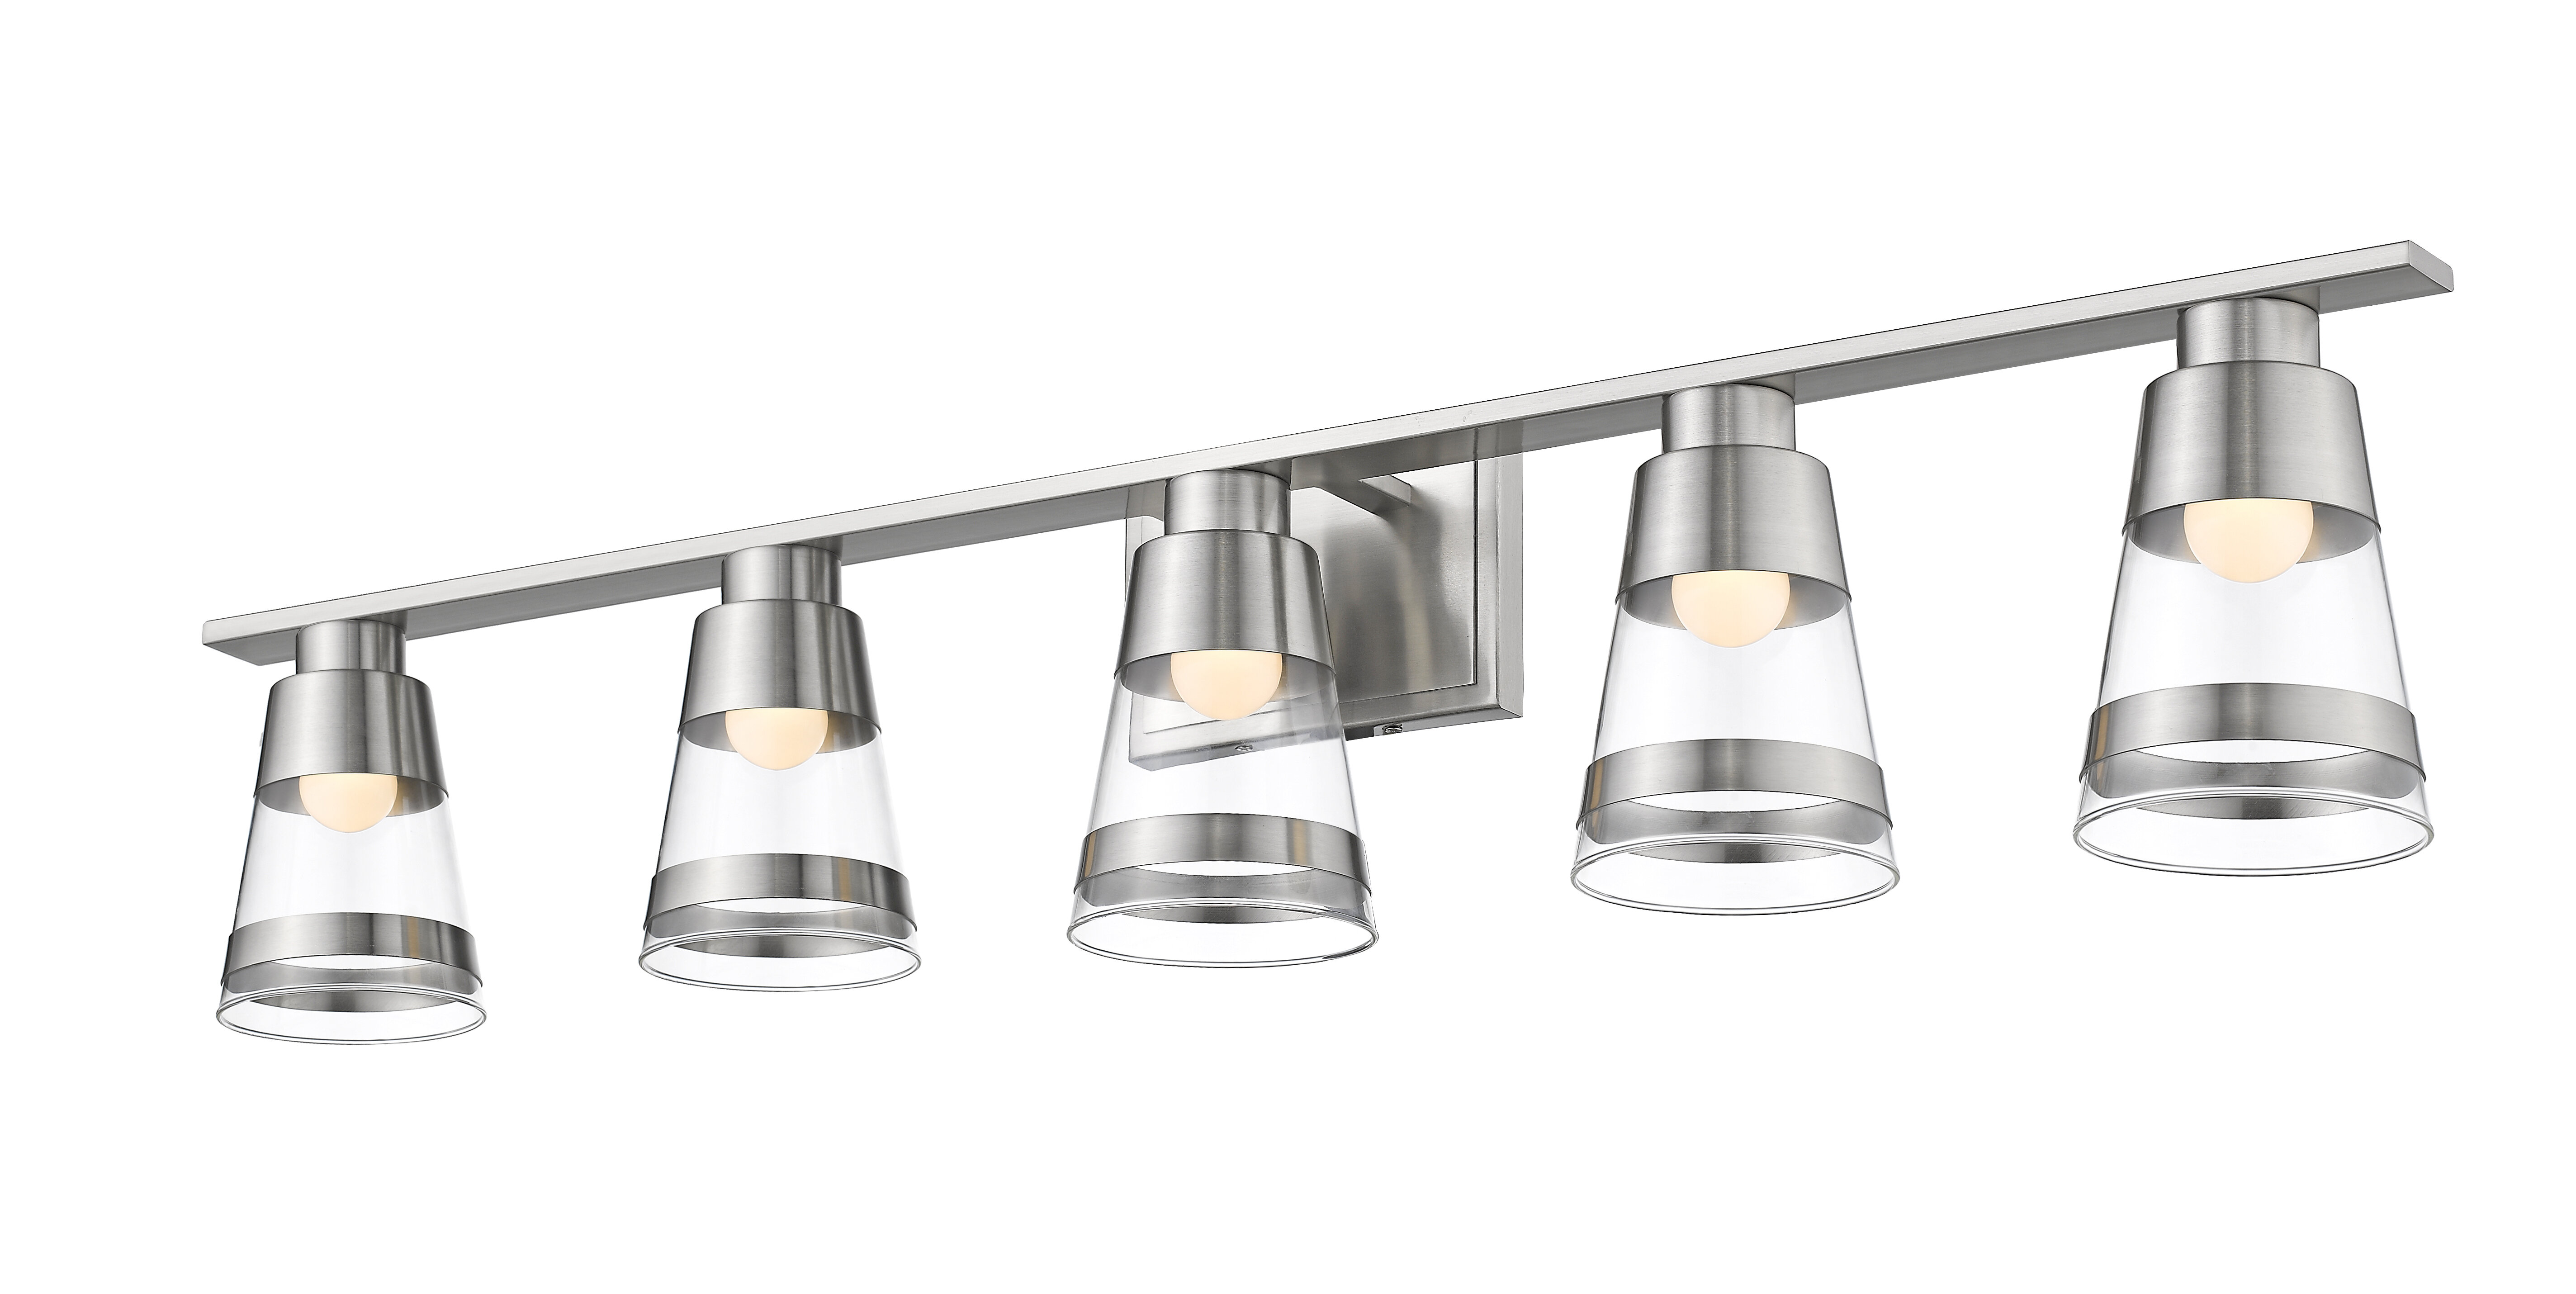 Breakwater Bay Jacey 5 Light Led Vanity Light Wayfair